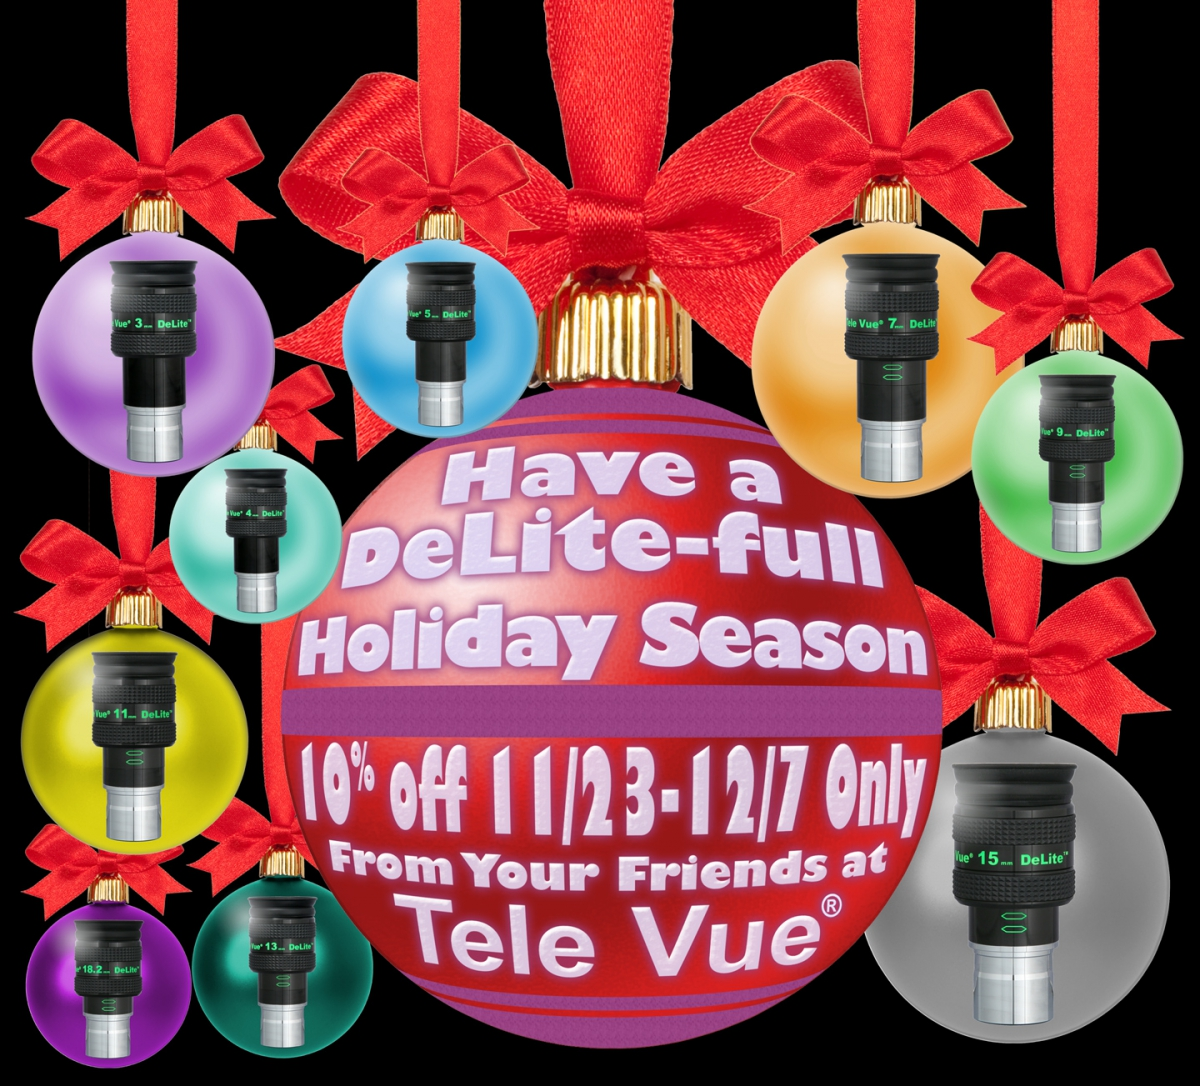 DeLite-full Holiday Season SALE!